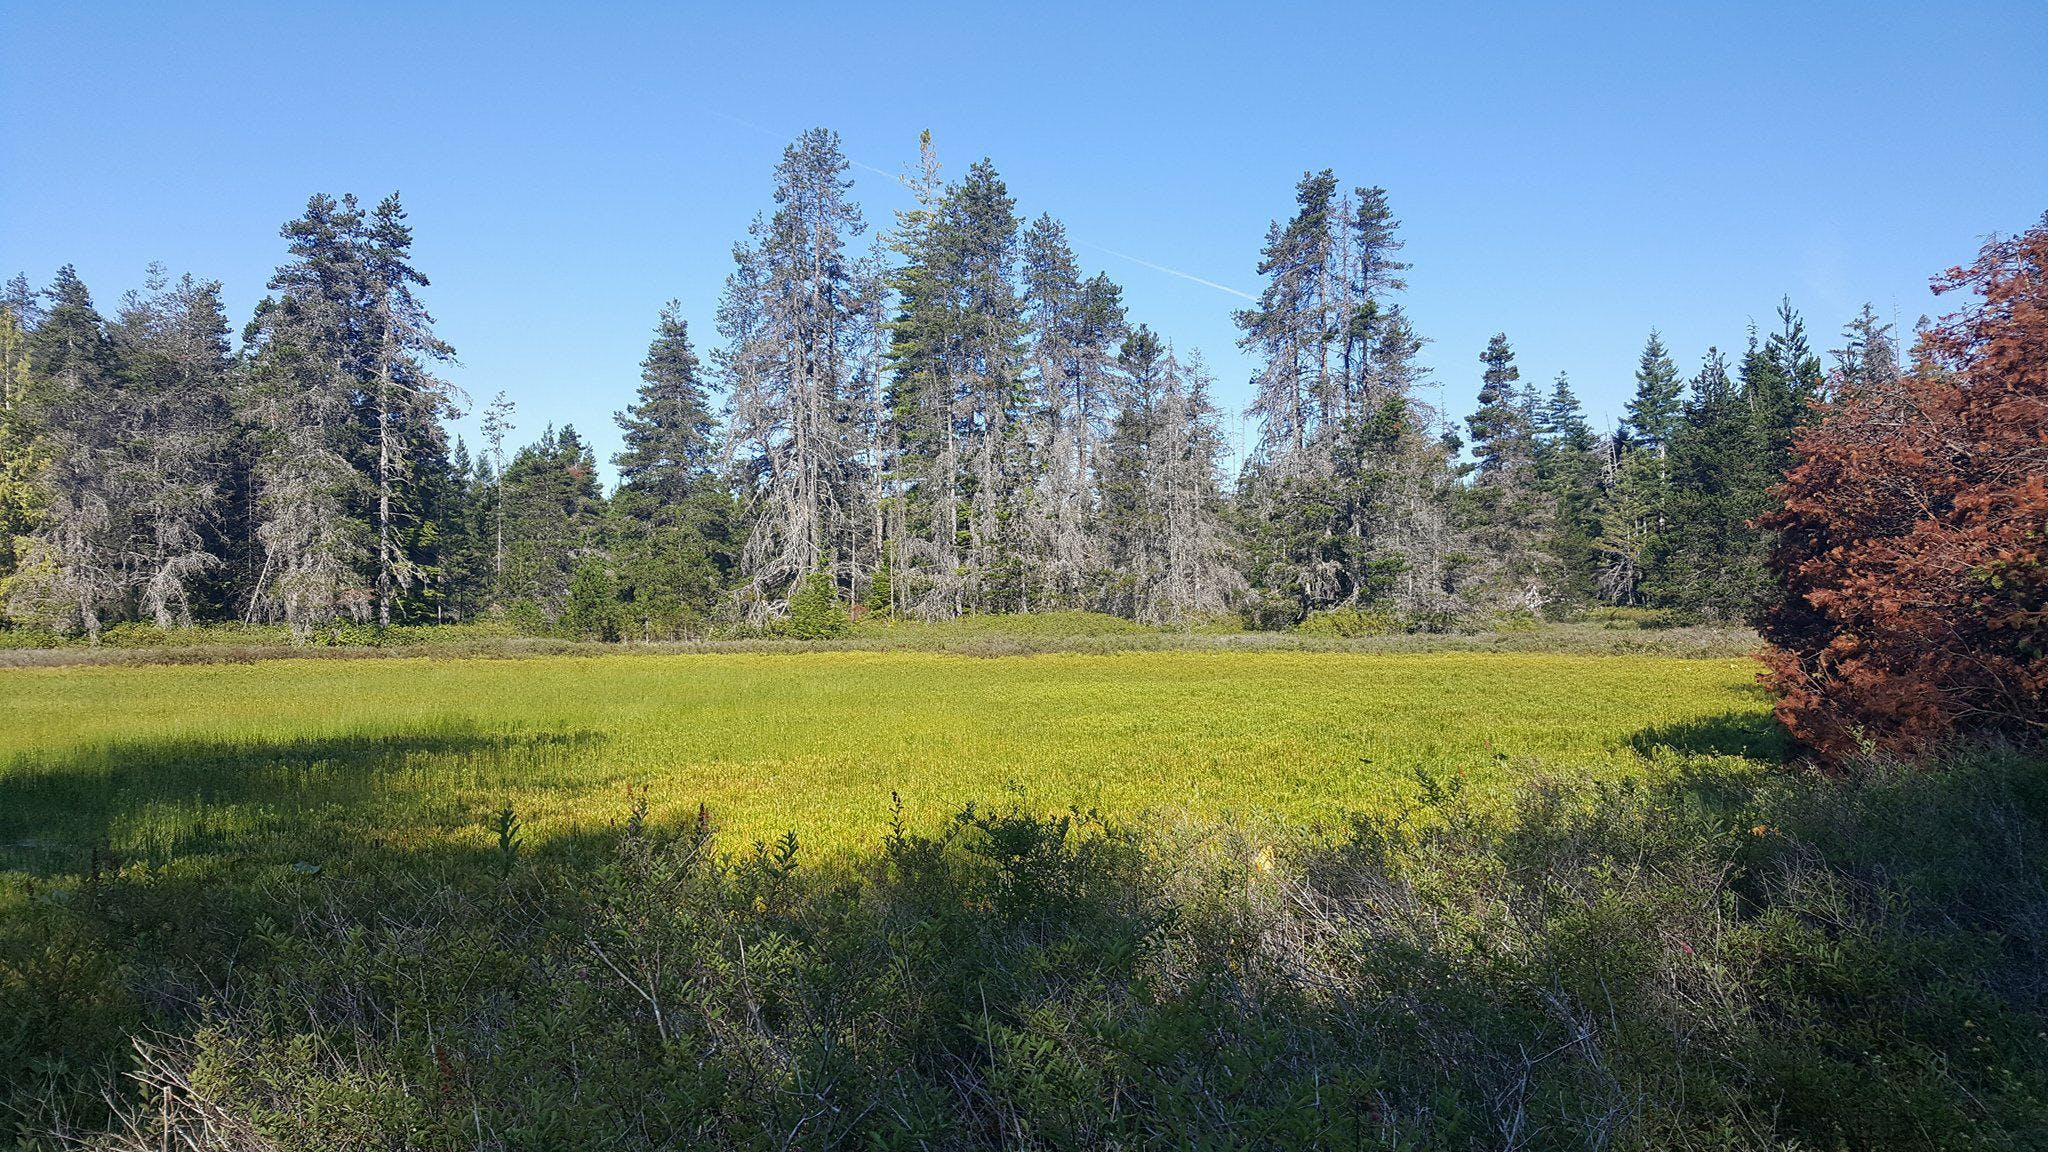 Wetland in the Big Qualicum Water Region